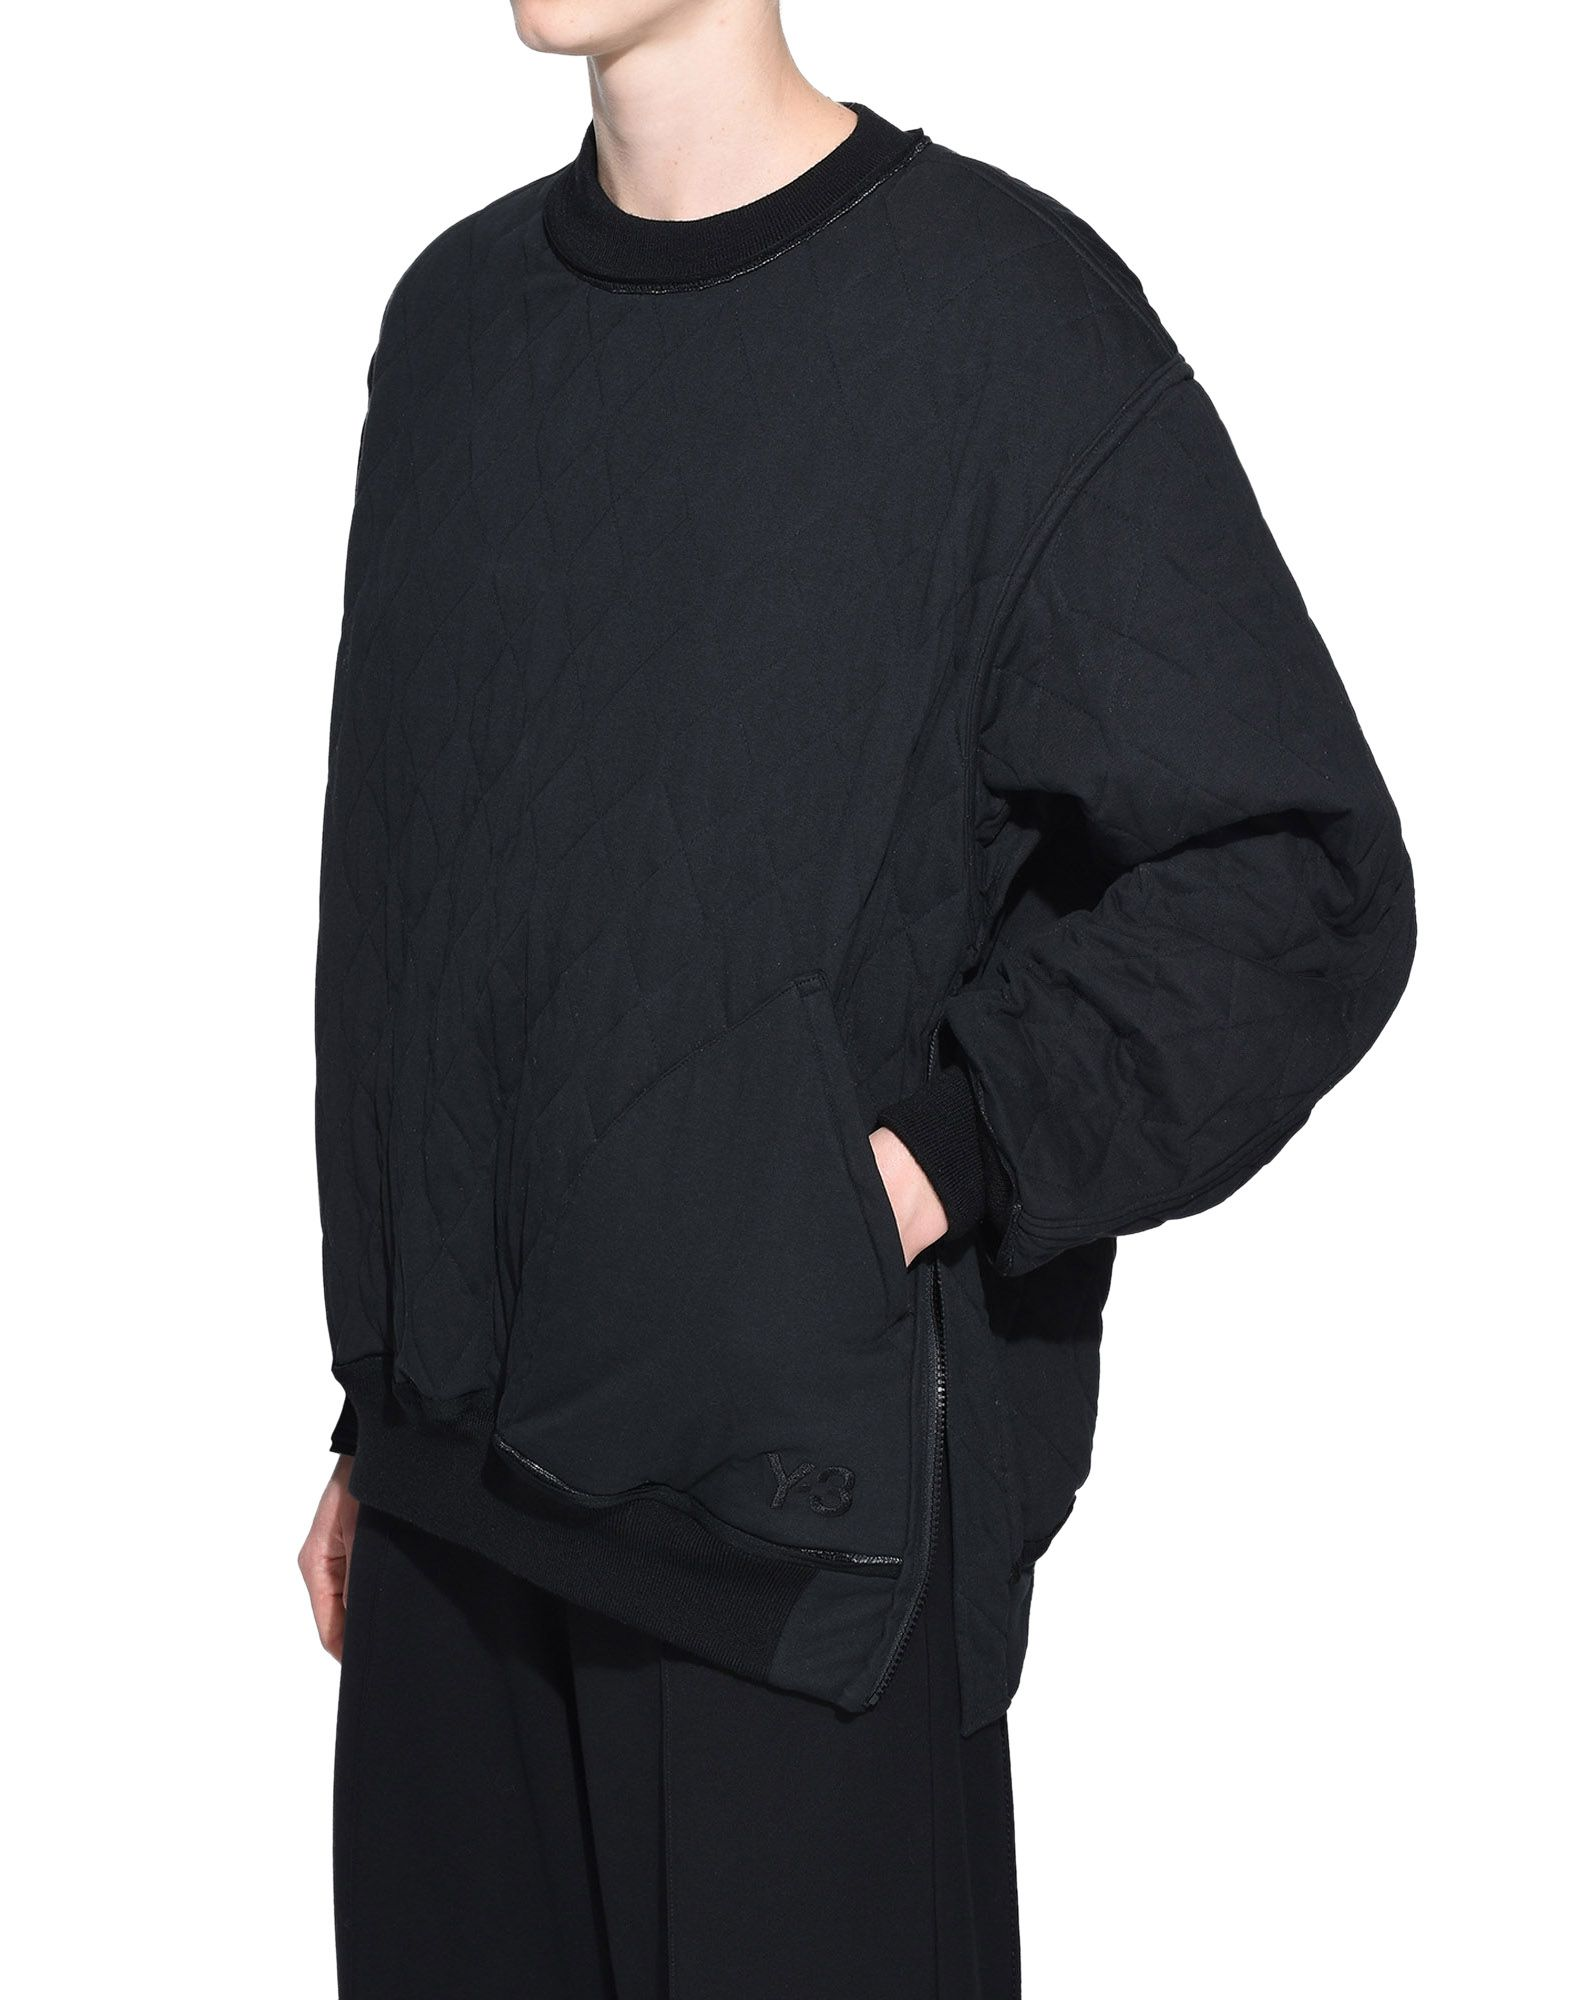 Y-3 Y-3 Quilted Sweater スウェット レディース e